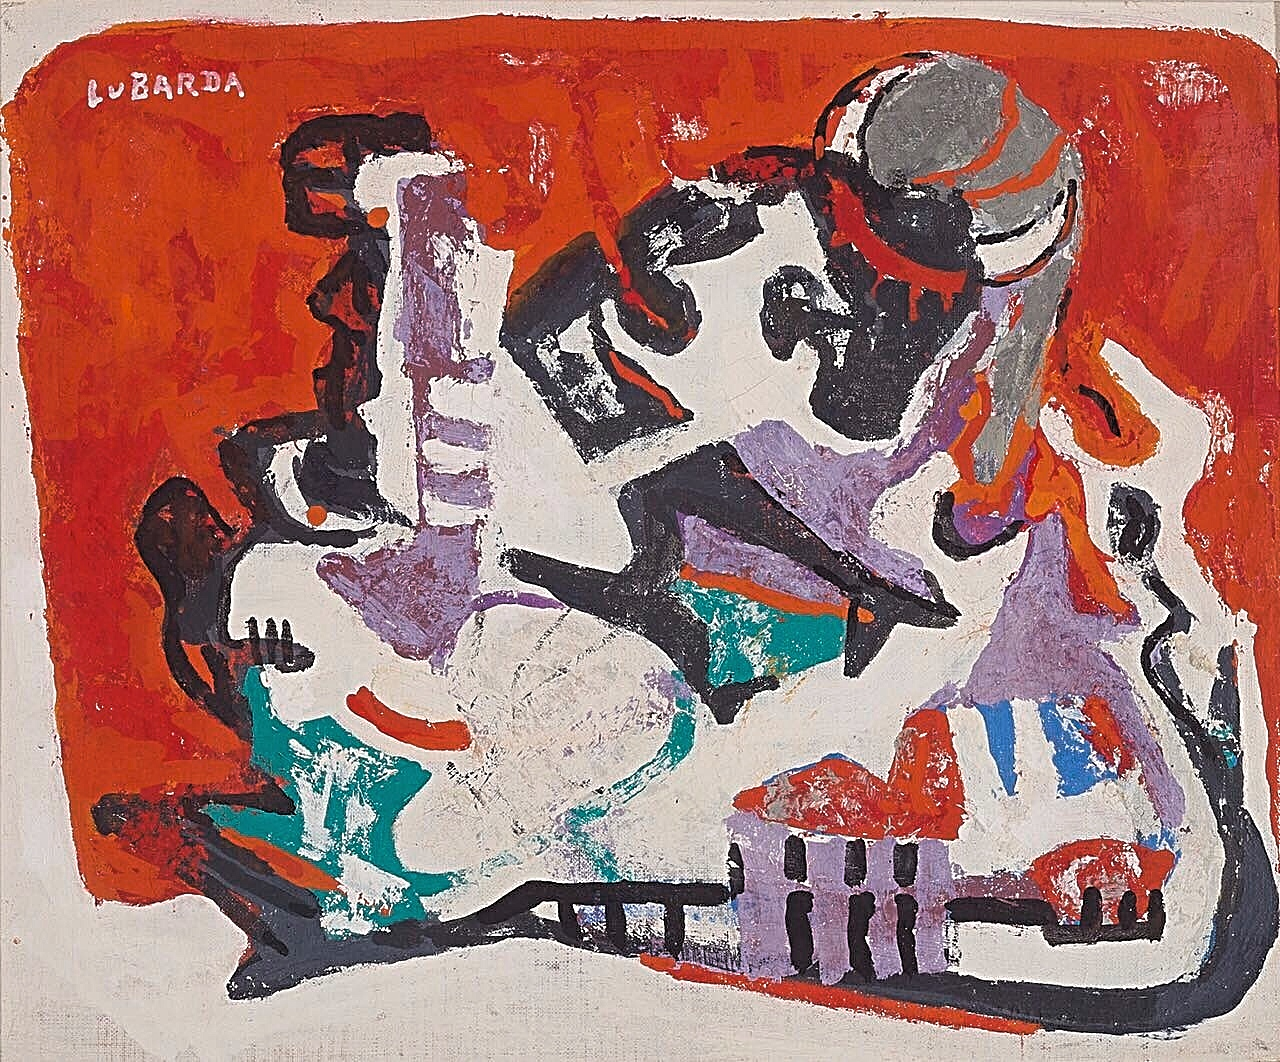 The Bull and the moon, 1952